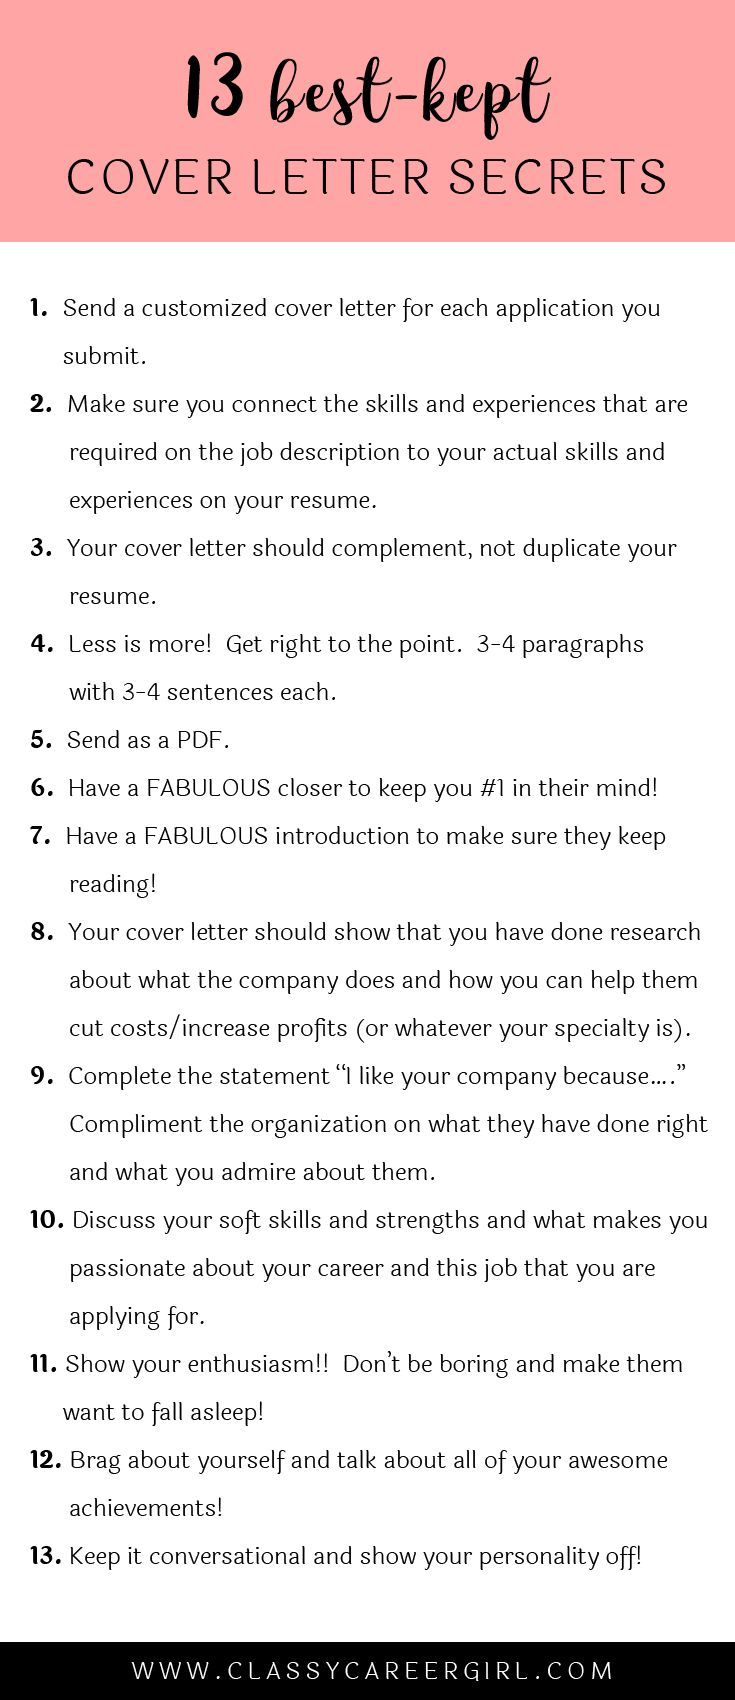 Cover Letter Advice Stunning The 13 Bestkept Cover Letter Secrets  Small Things Career Inspiration